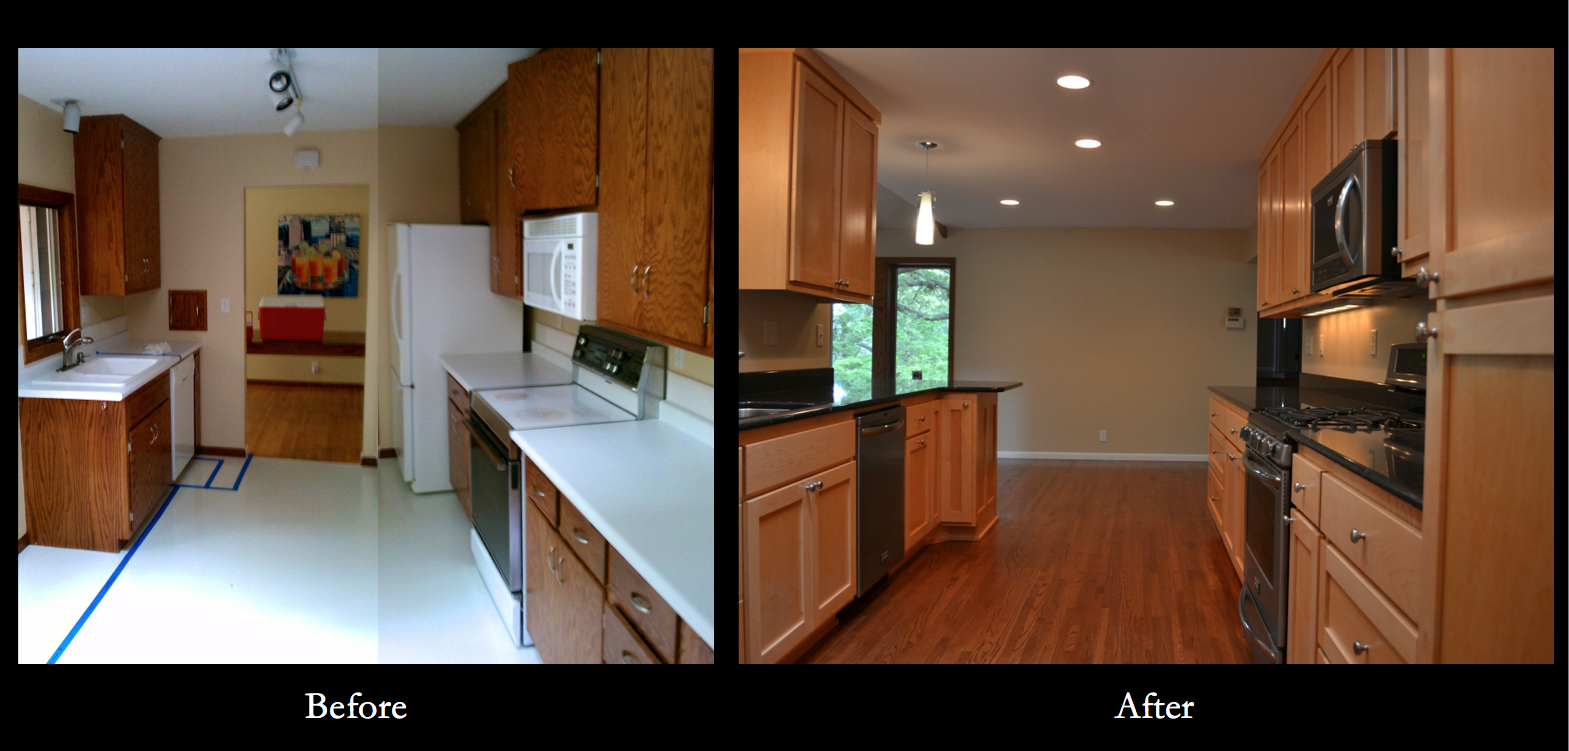 Dbc extreme makeover making your house feel like home for Kitchen and remodeling